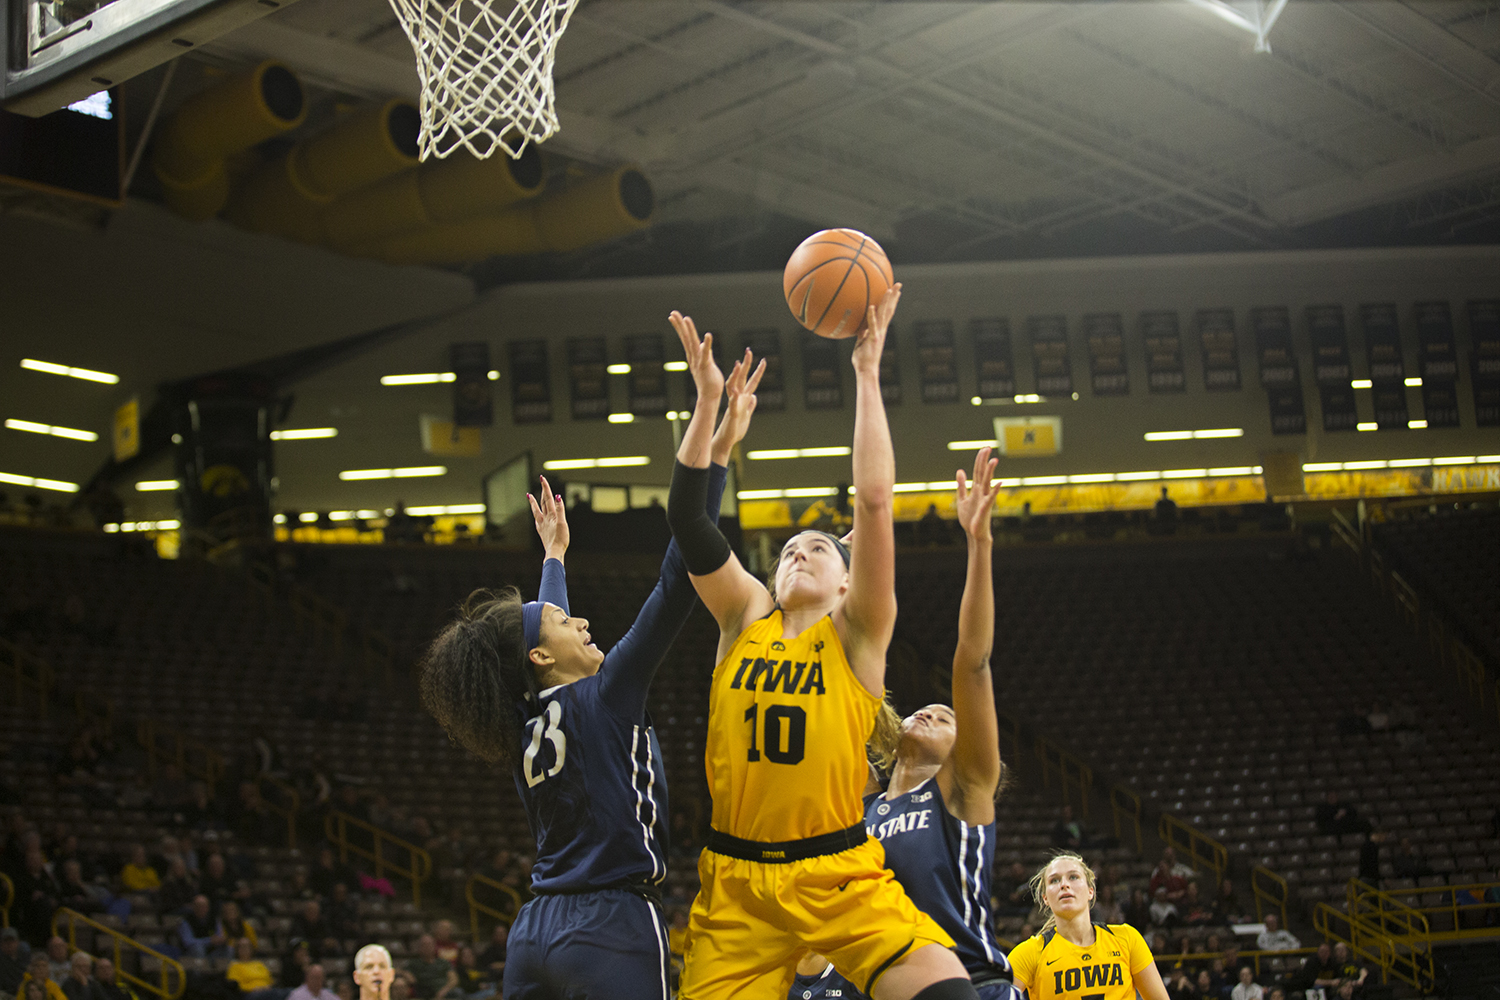 Iowa forward Megan Gustafson attempts a shot during the Iowa/Penn State basketball game at Carver-Hawkeye Arena on Thursday, Feb. 8, 2018.